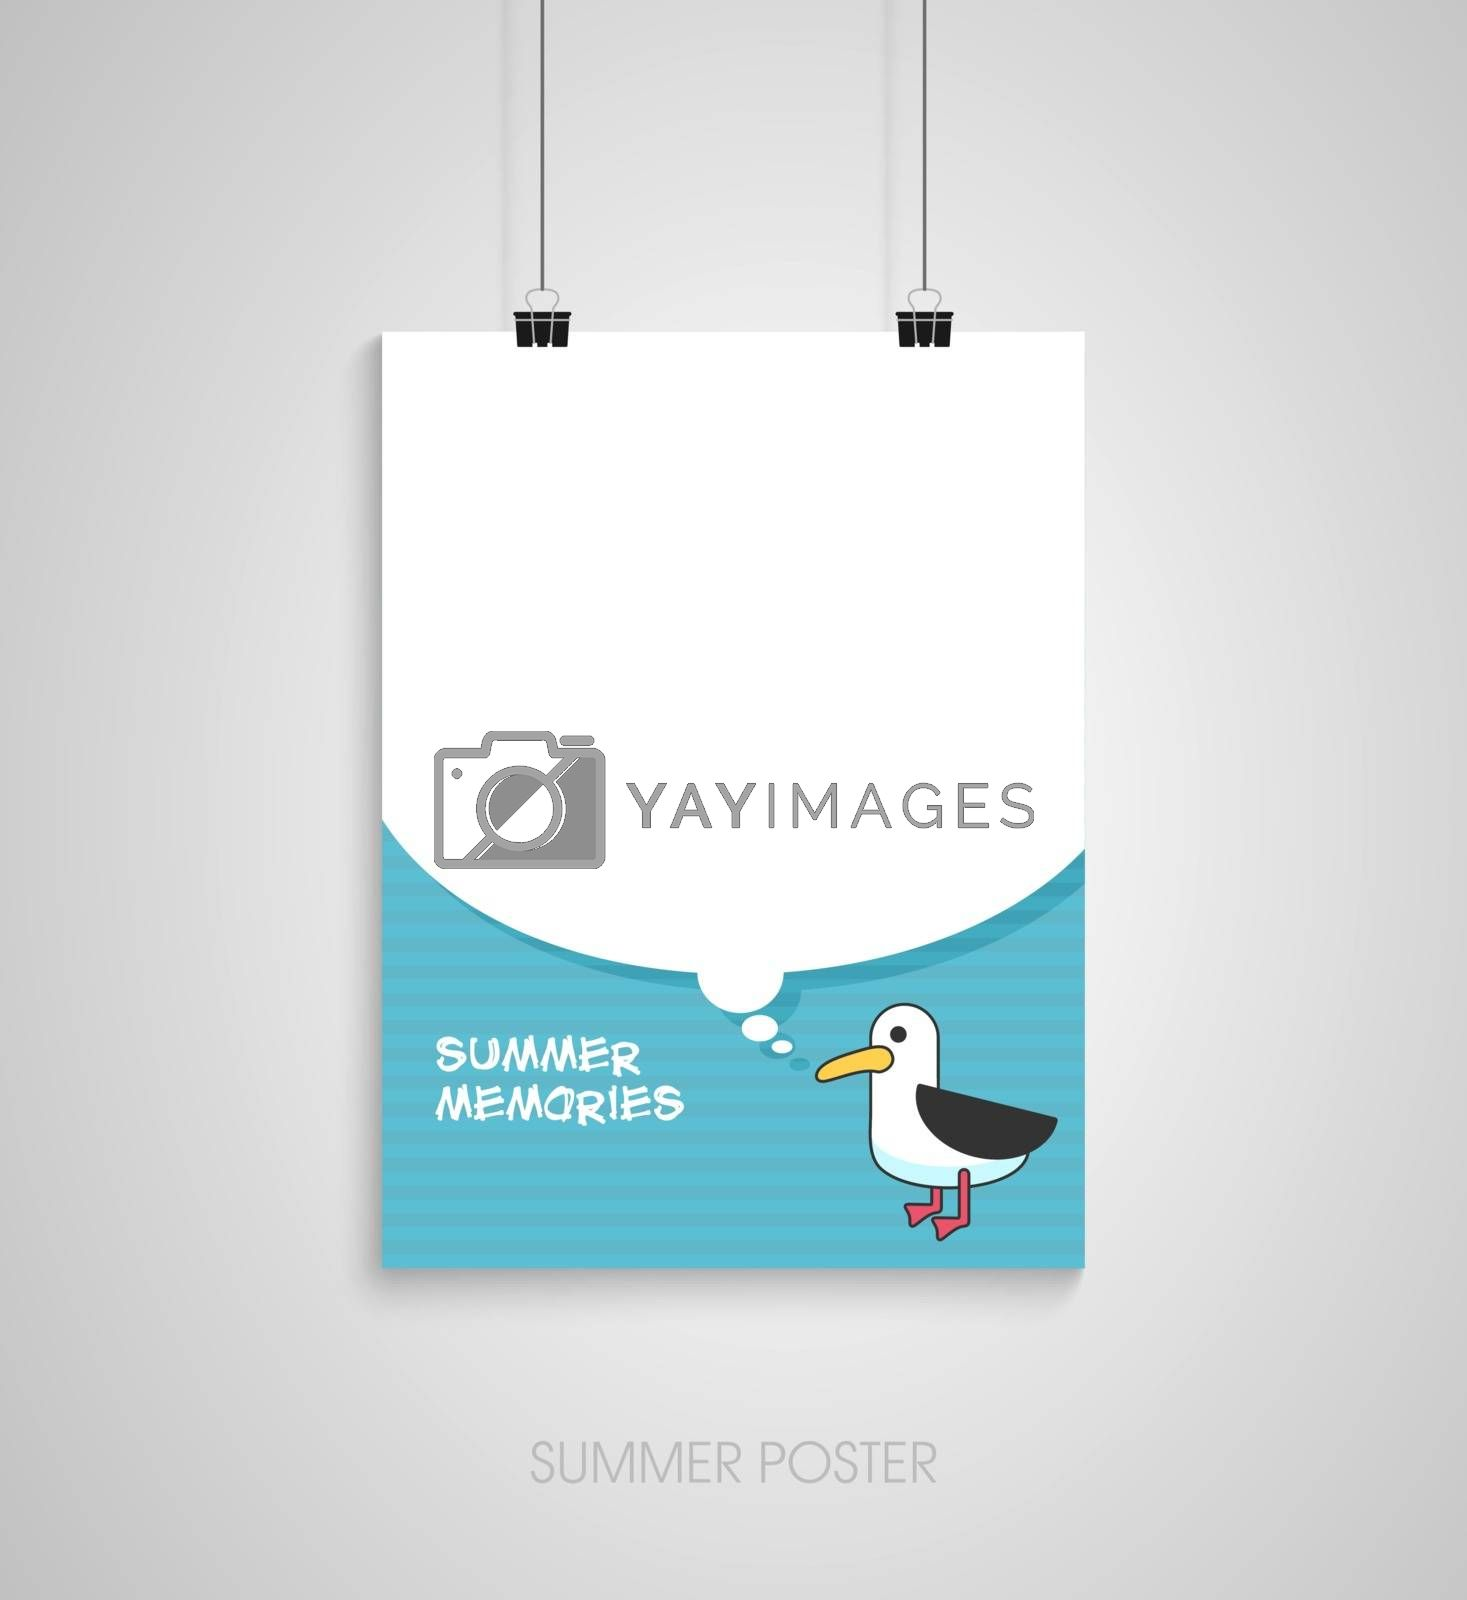 Summer flyer card with seagull and text bubble. Summer memories. Journal cards. Vector illustrations for t-shirt, poster prints. Holiday, travel, vacation theme